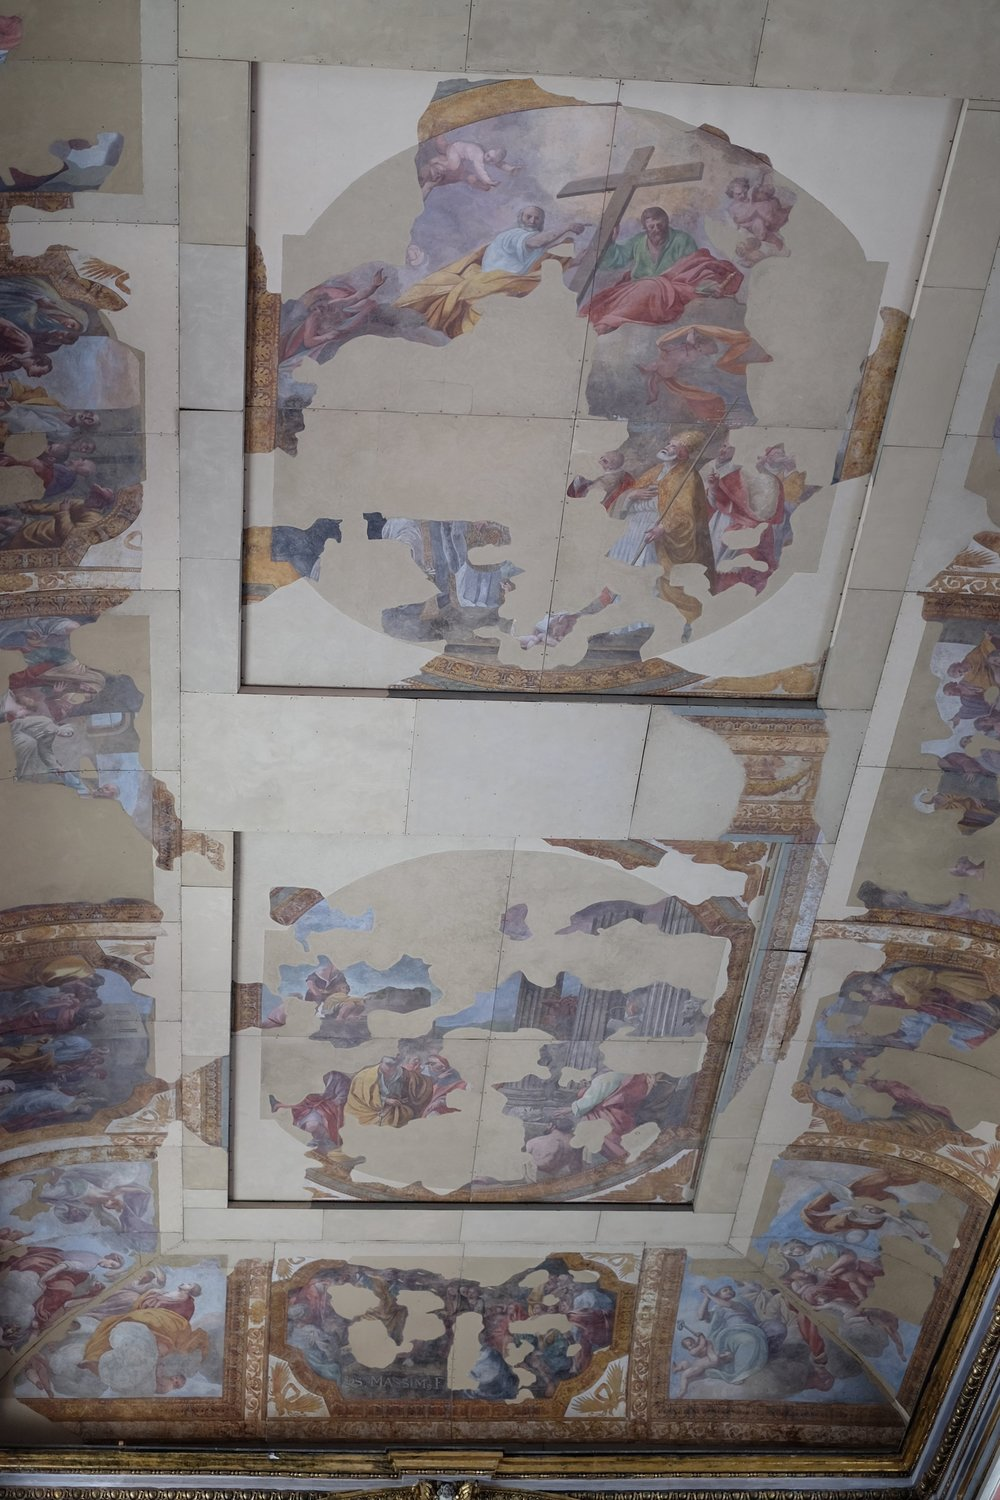 Rest of the ceiling.